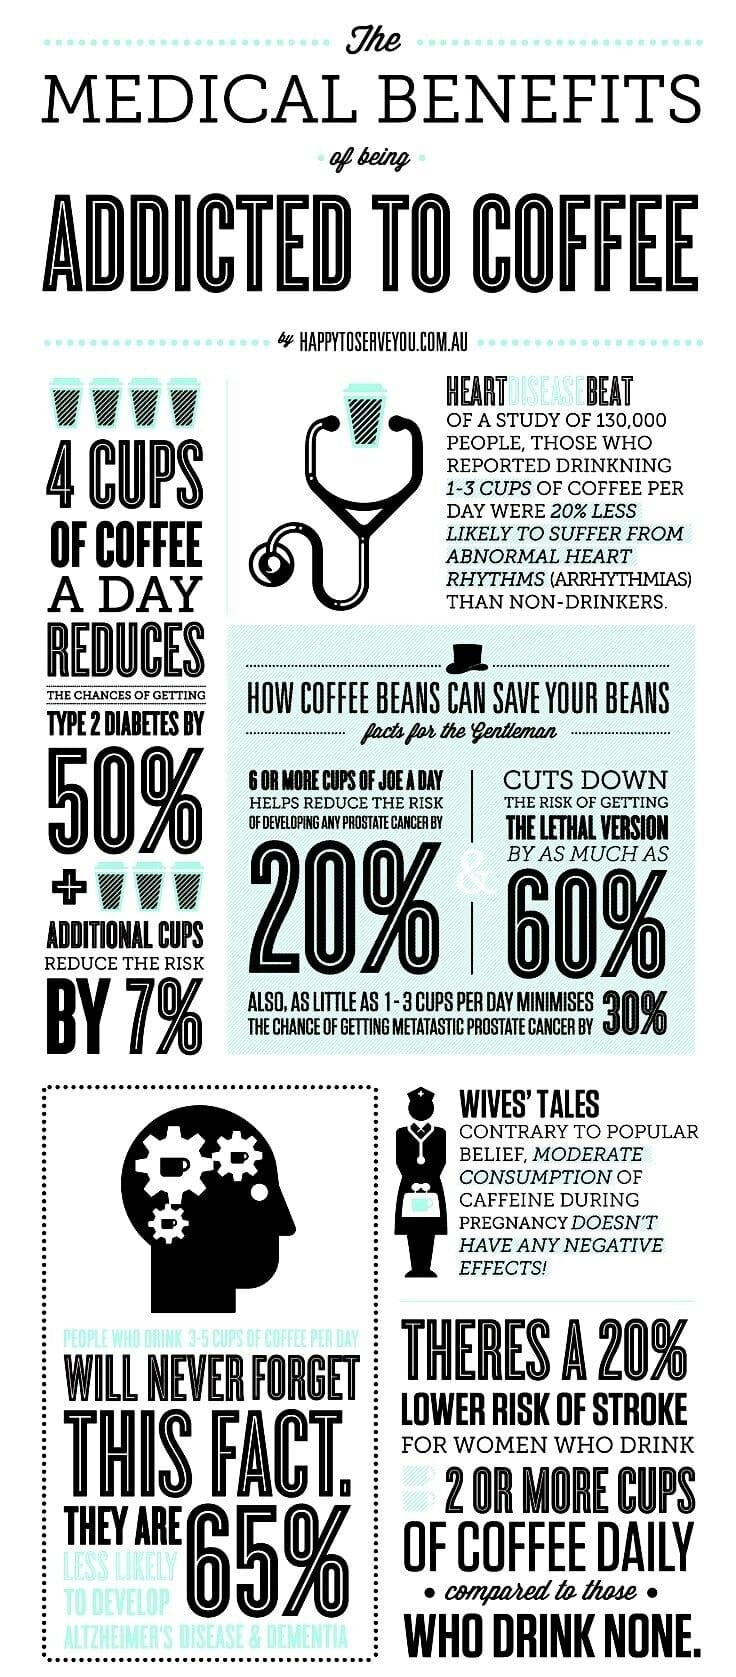 medical benefits of coffee addiction